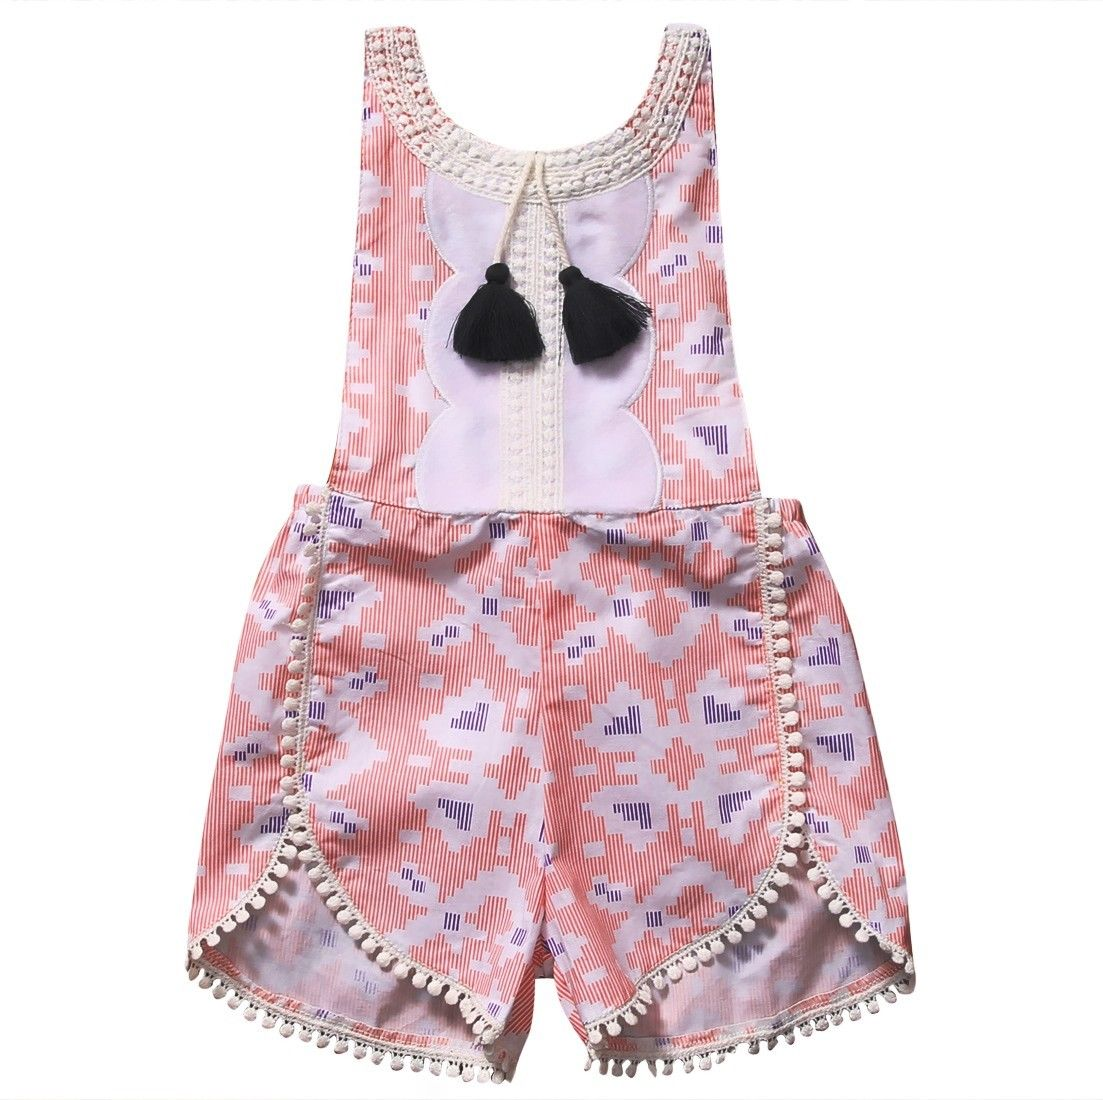 2017 New arrival Summer Baby Girl clothes Floral baby Romper Jumper Jumpsuit Sunsuit 0-4years Newborn baby clothing